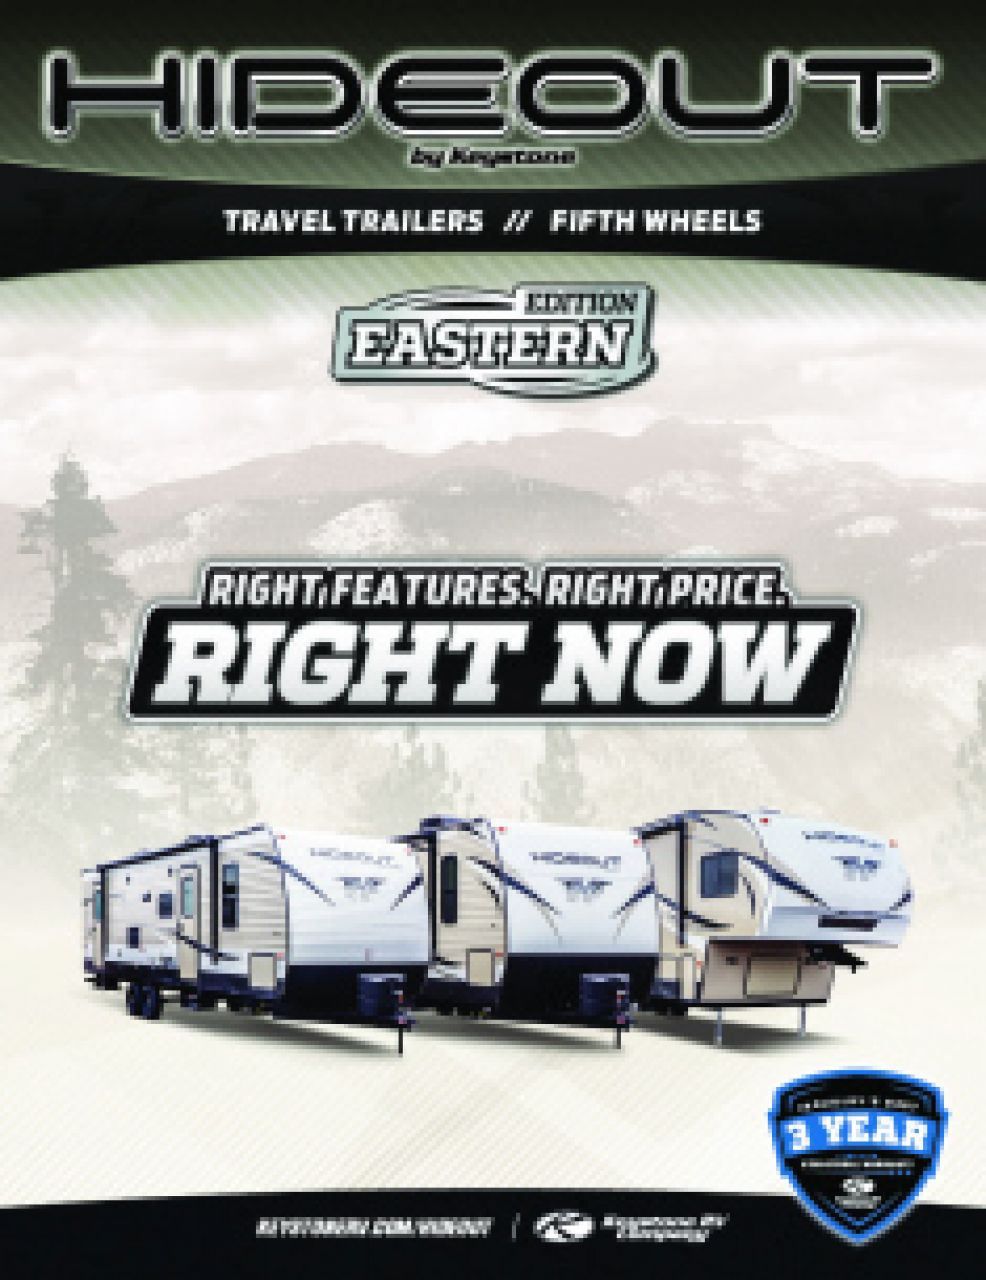 2019 Keystone Hideout RV Brochure Cover